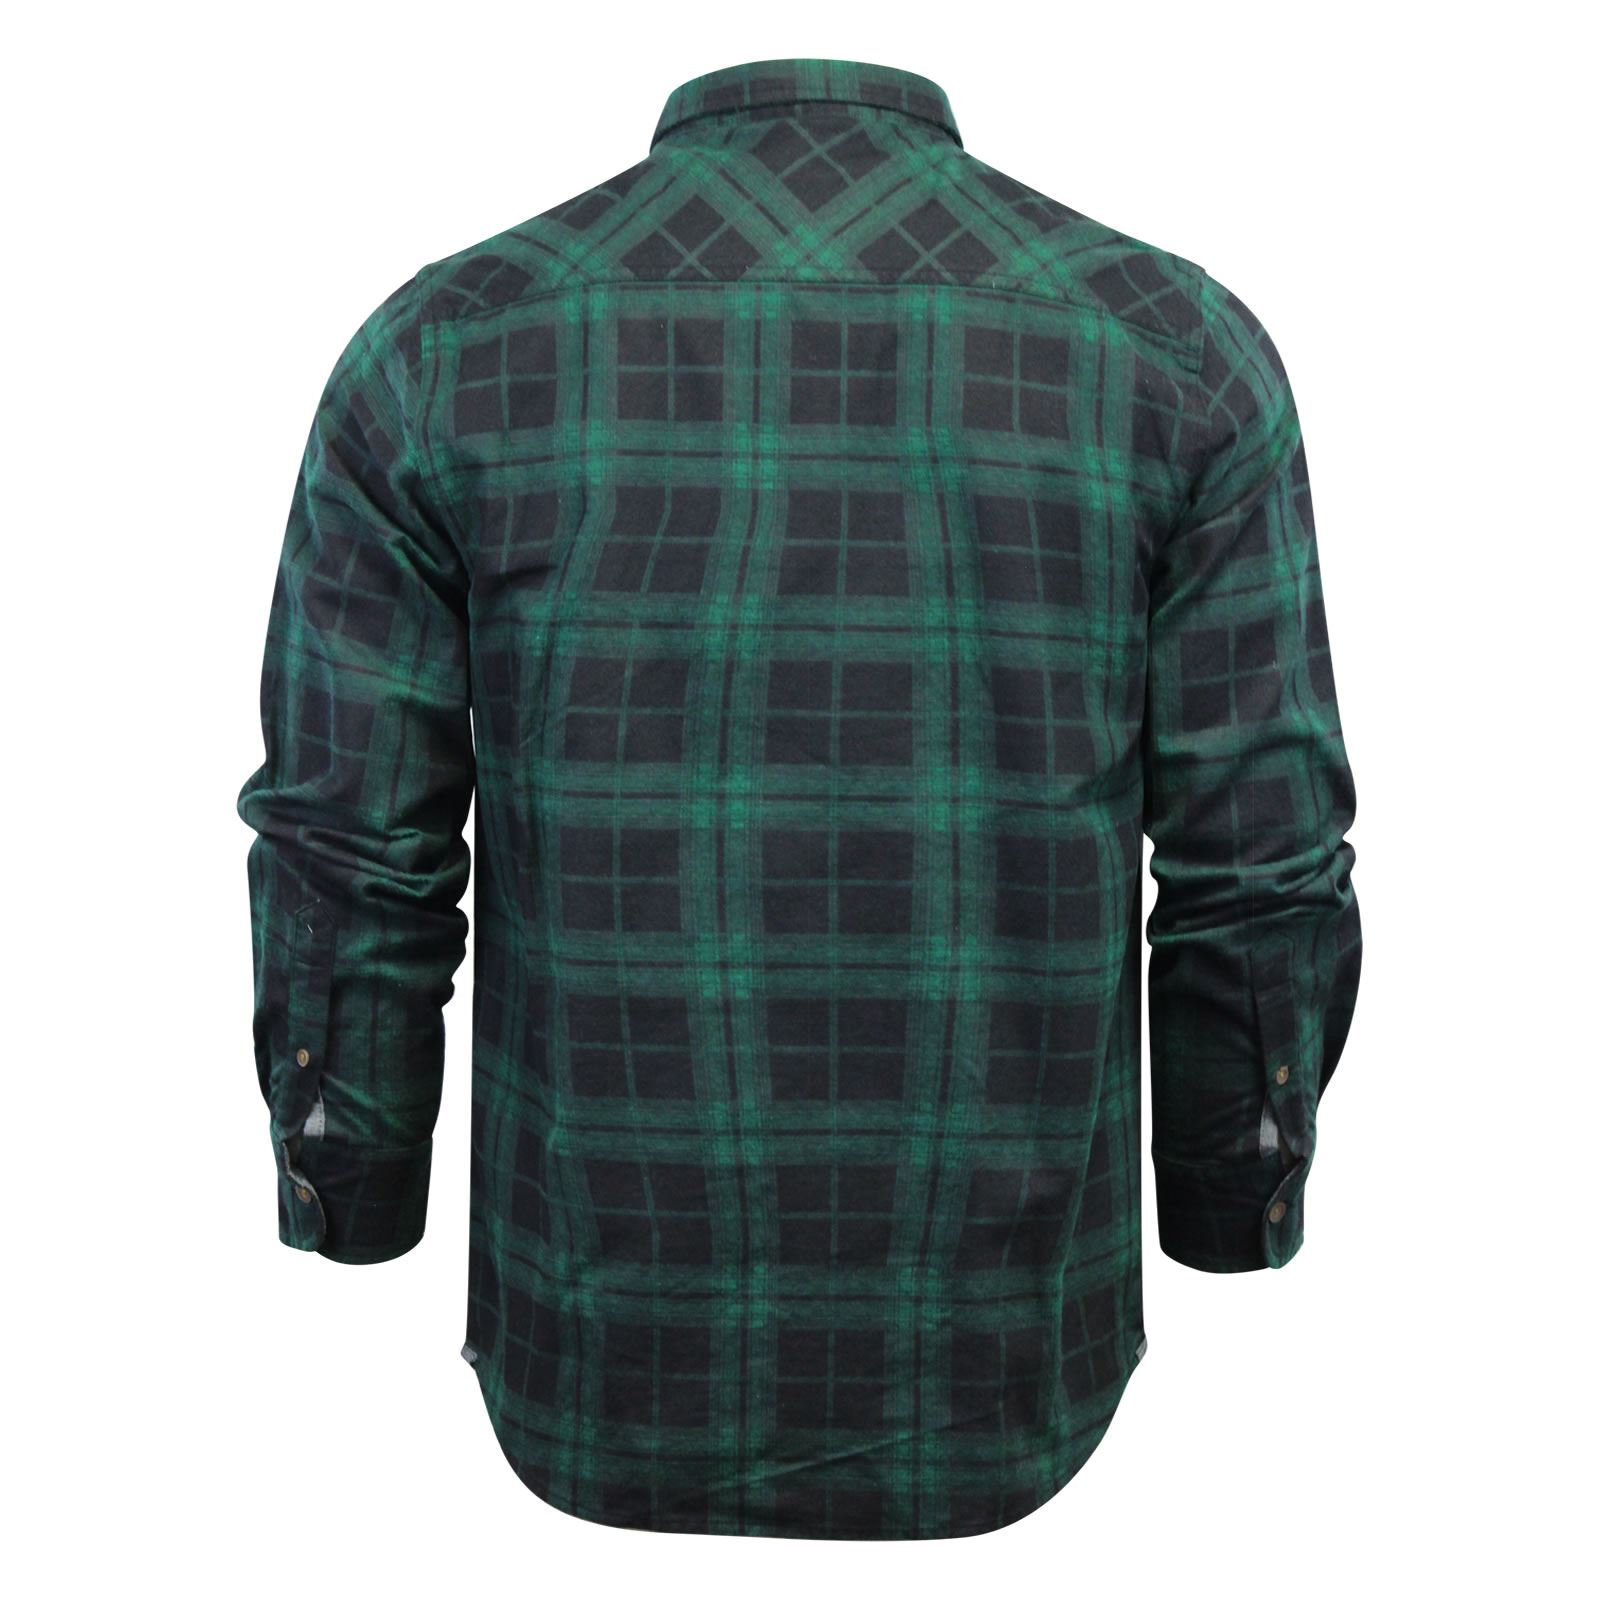 Mens-Check-Shirt-Brave-Soul-Flannel-Brushed-Cotton-Long-Sleeve-Casual-Top thumbnail 107